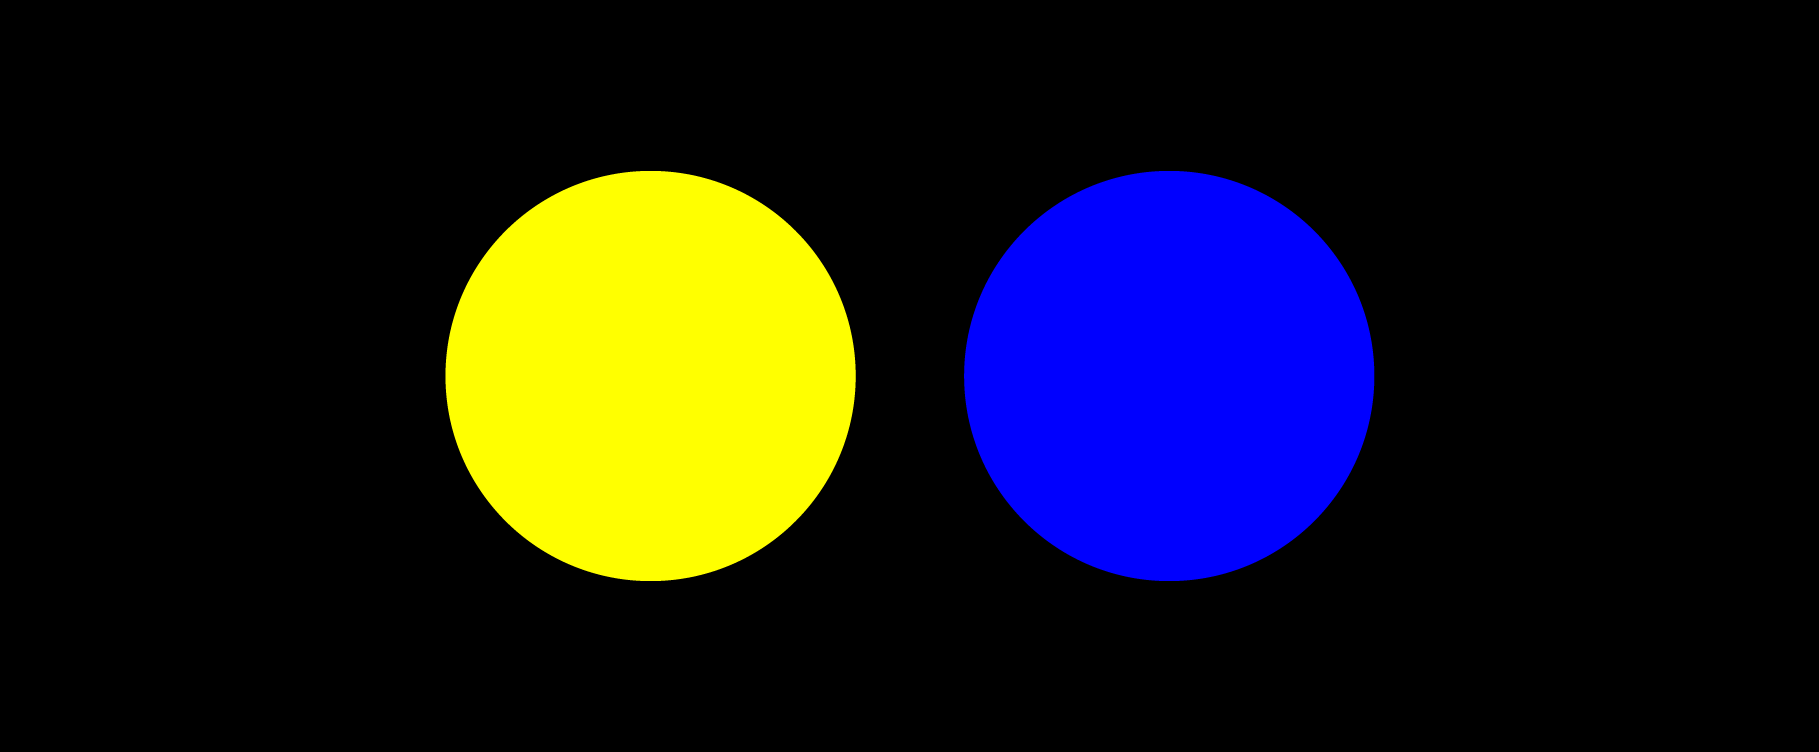 a large yellow dot and a large blue dot on black